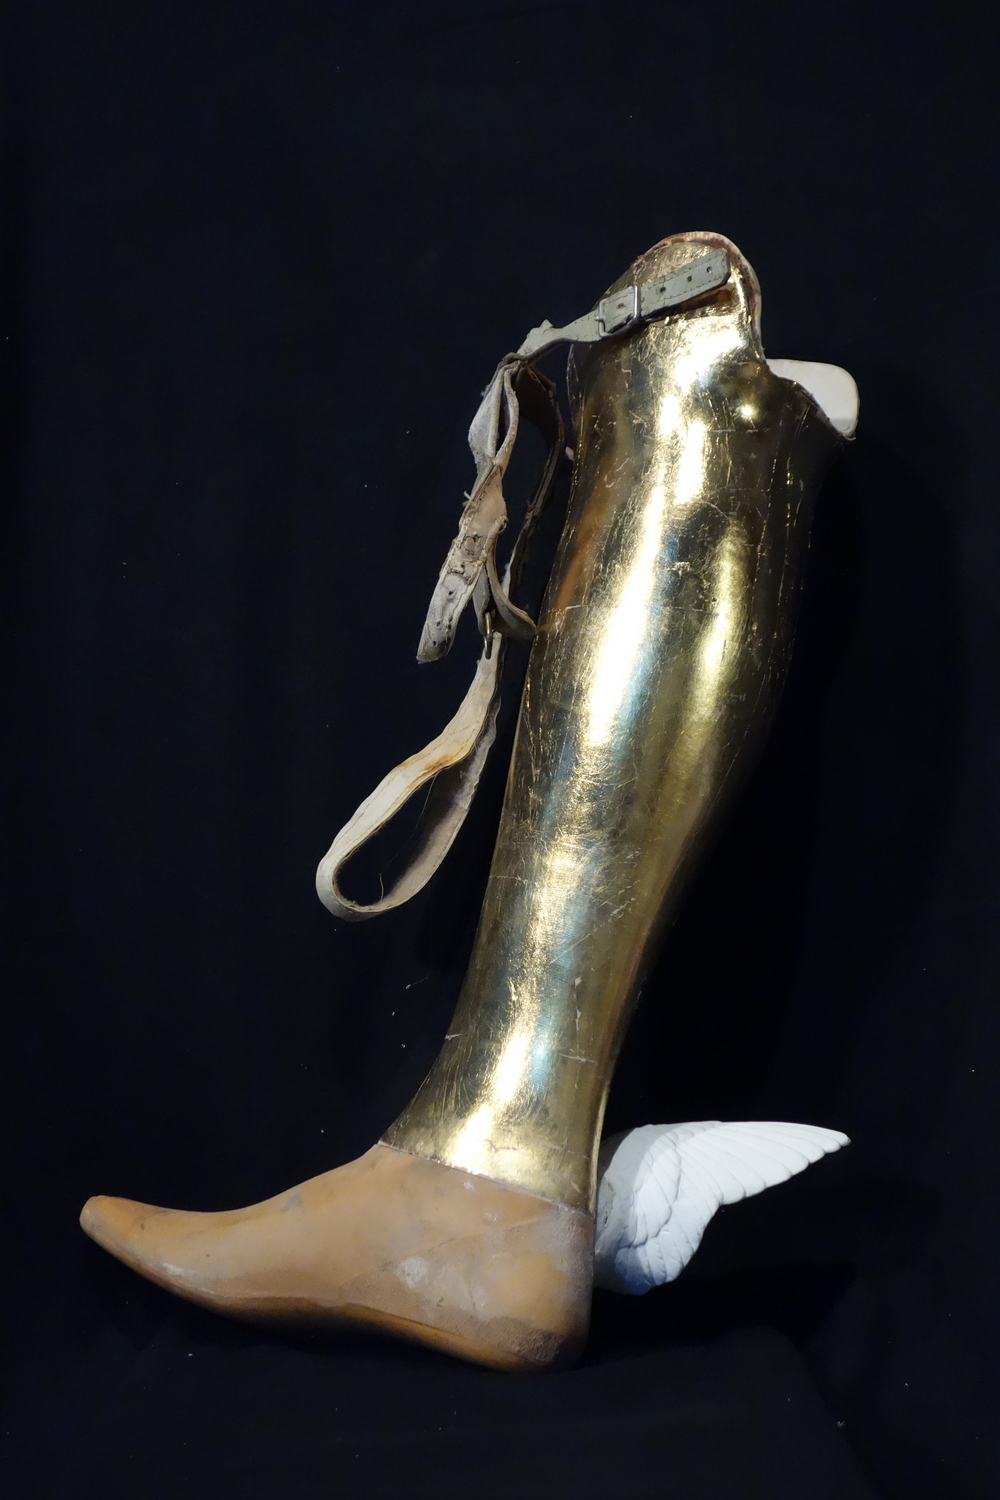 Golden Calf, 2014, gilded prosthetic leg and plaster, 22x15x6 inches